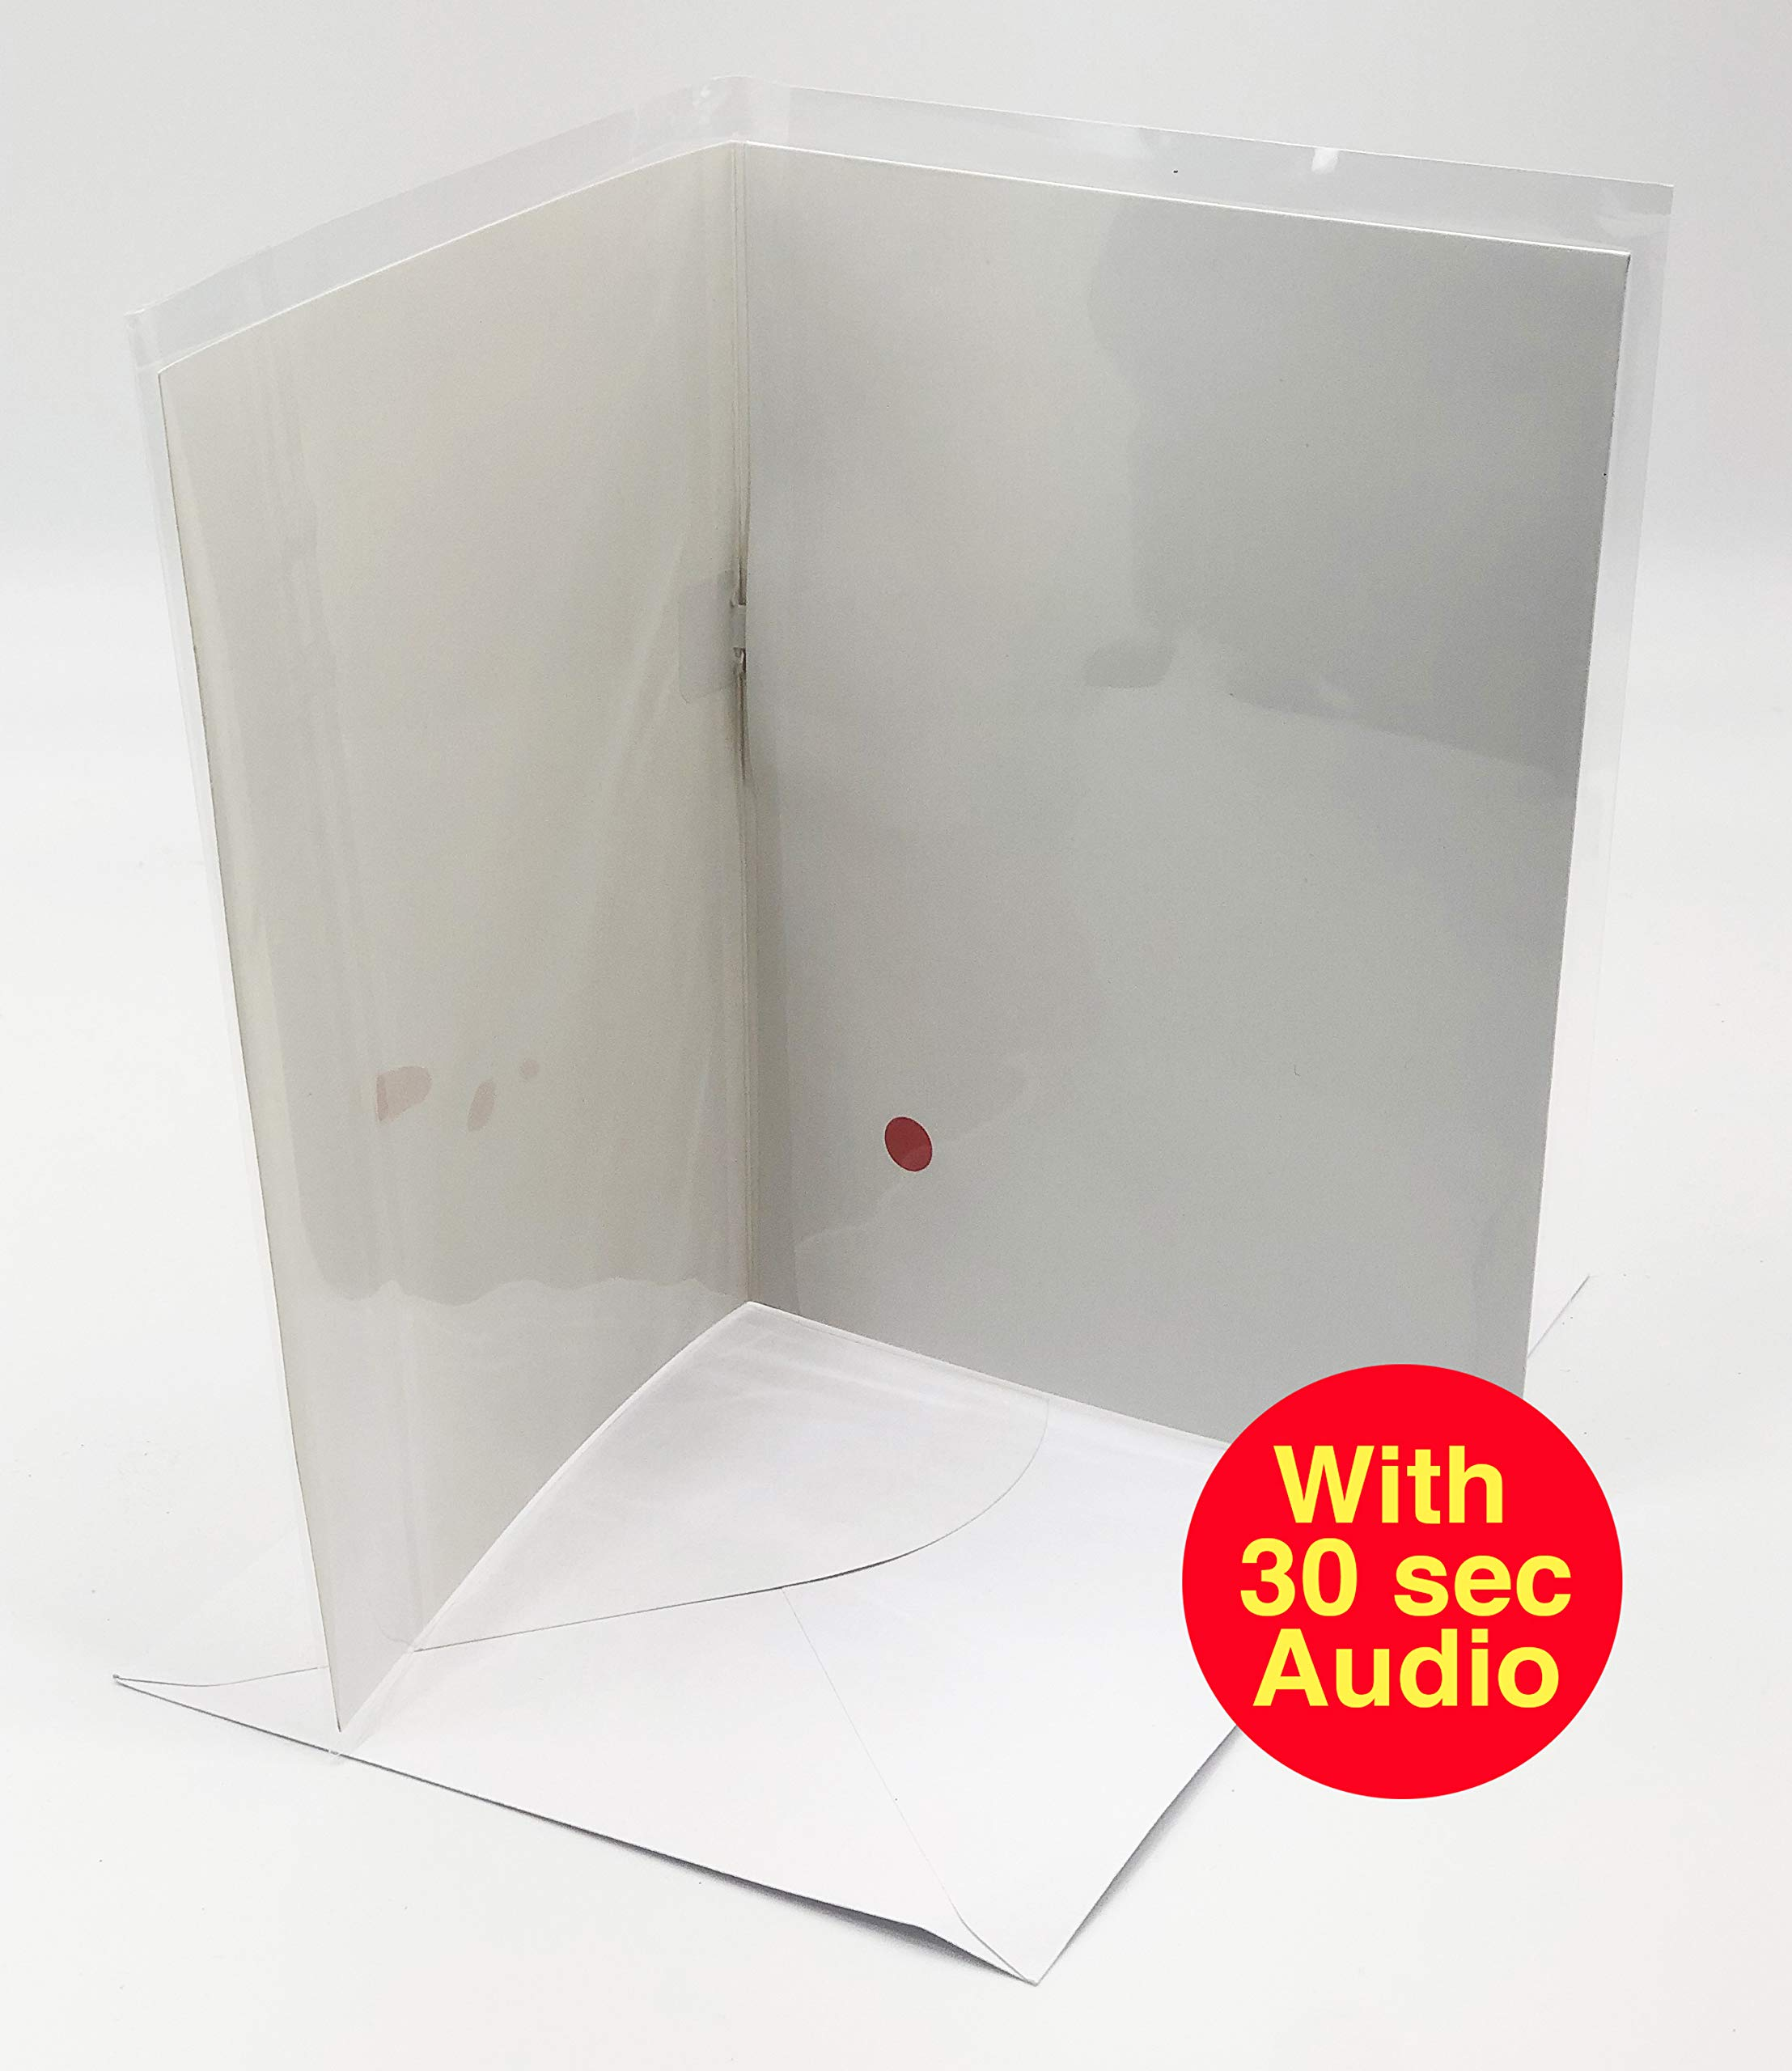 Recordable blank pulley activated A5 Greetings Cards. 30 second audio. Perfect for unique make your own cards. Immediate dispatch.